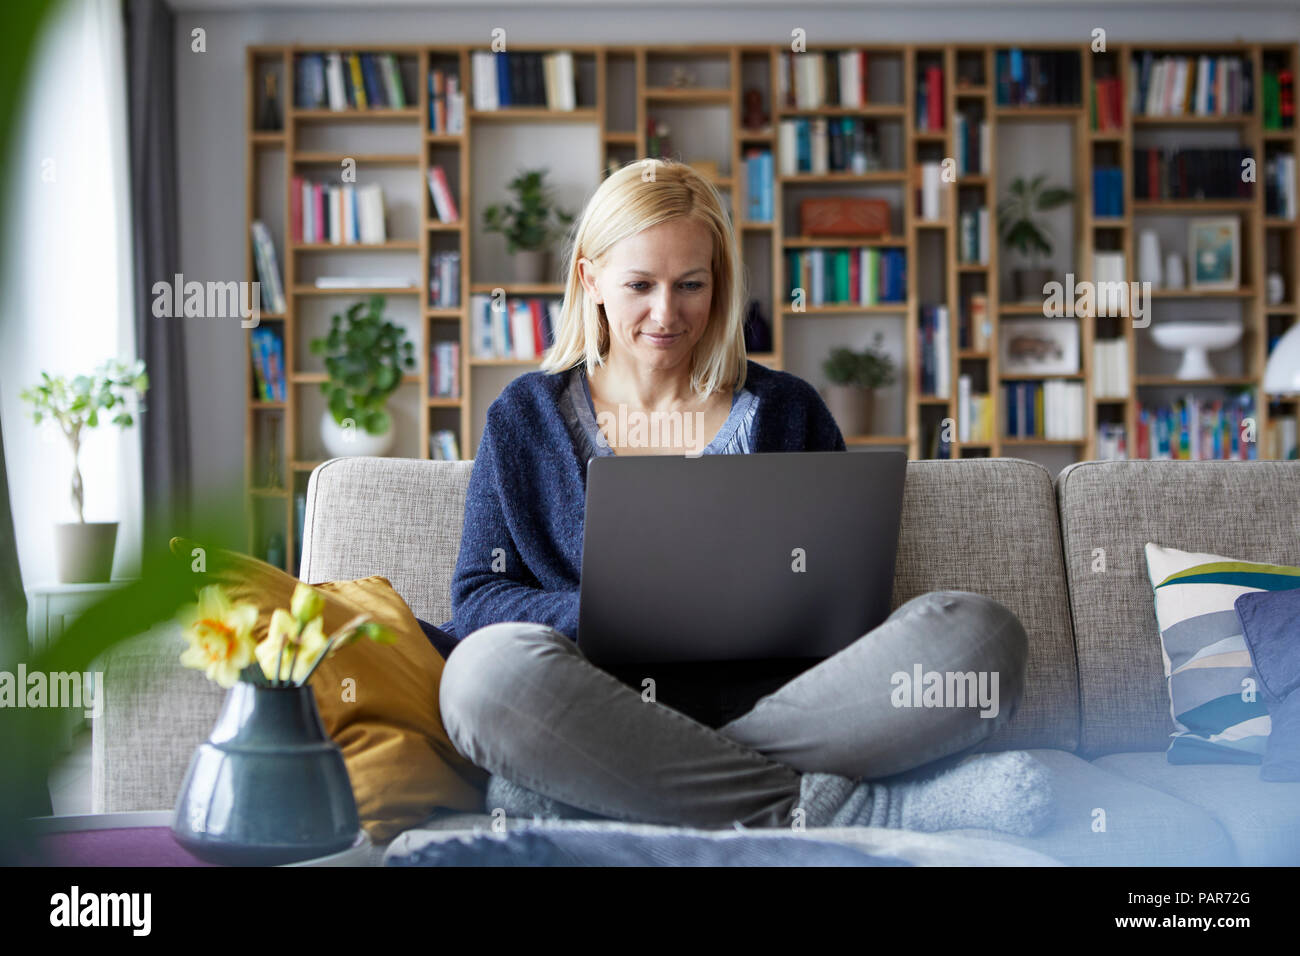 Woman at home sitting on couch using laptop Stock Photo